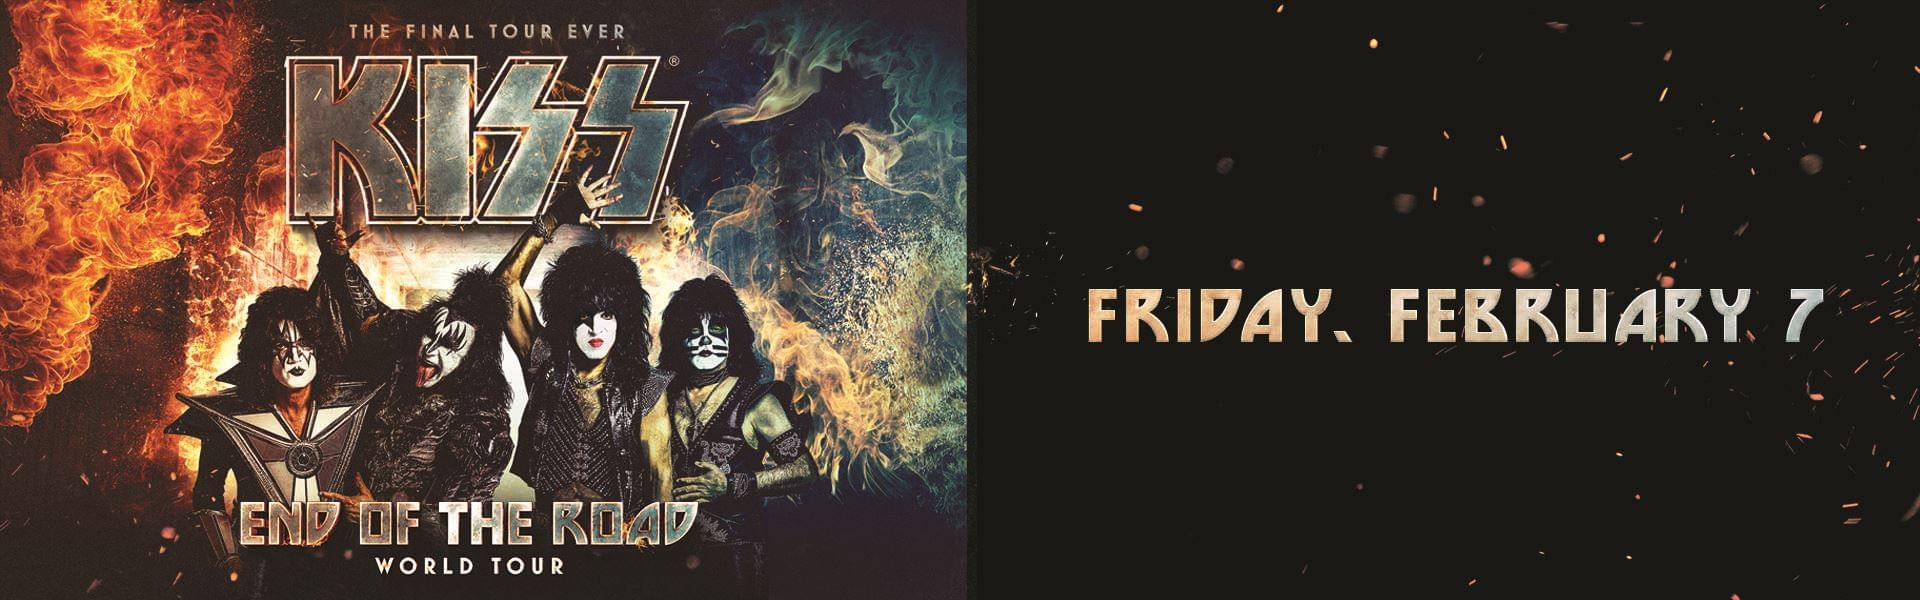 KISS: End of the Road World Tour with David Lee Roth (2/7)